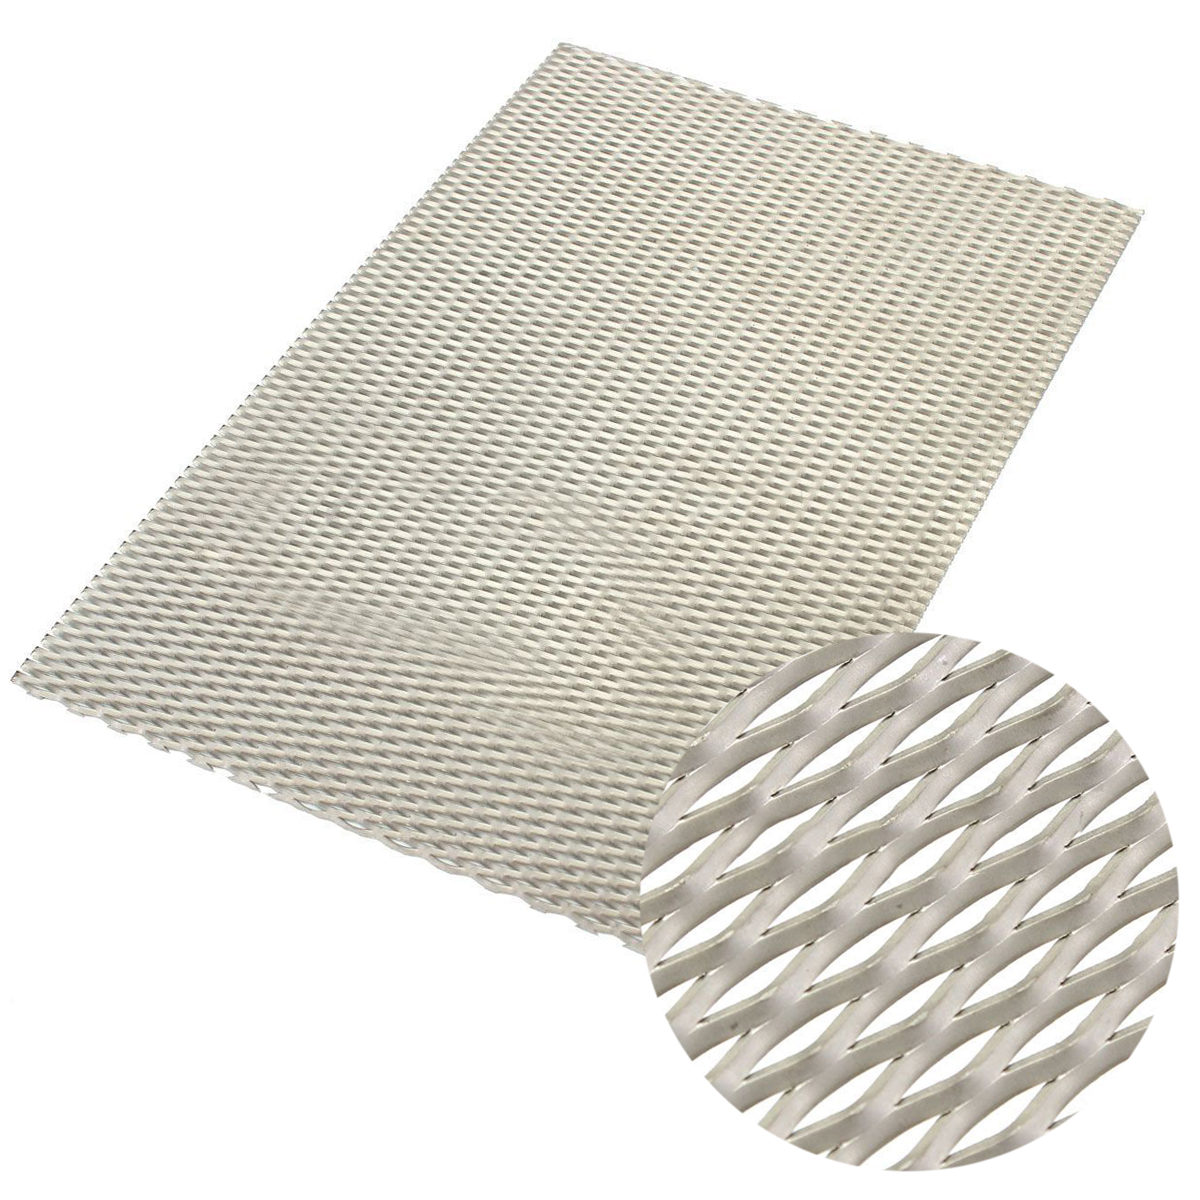 1pc Practical Titanium Mesh Sheet Perforated Plate Expanded Mesh with Corrosion Resistance 200mmx300mmx0.5mm 1pc recycled metal titanium mesh sheet with corrosion resistance 50mmx165mm electrode for electrolysis